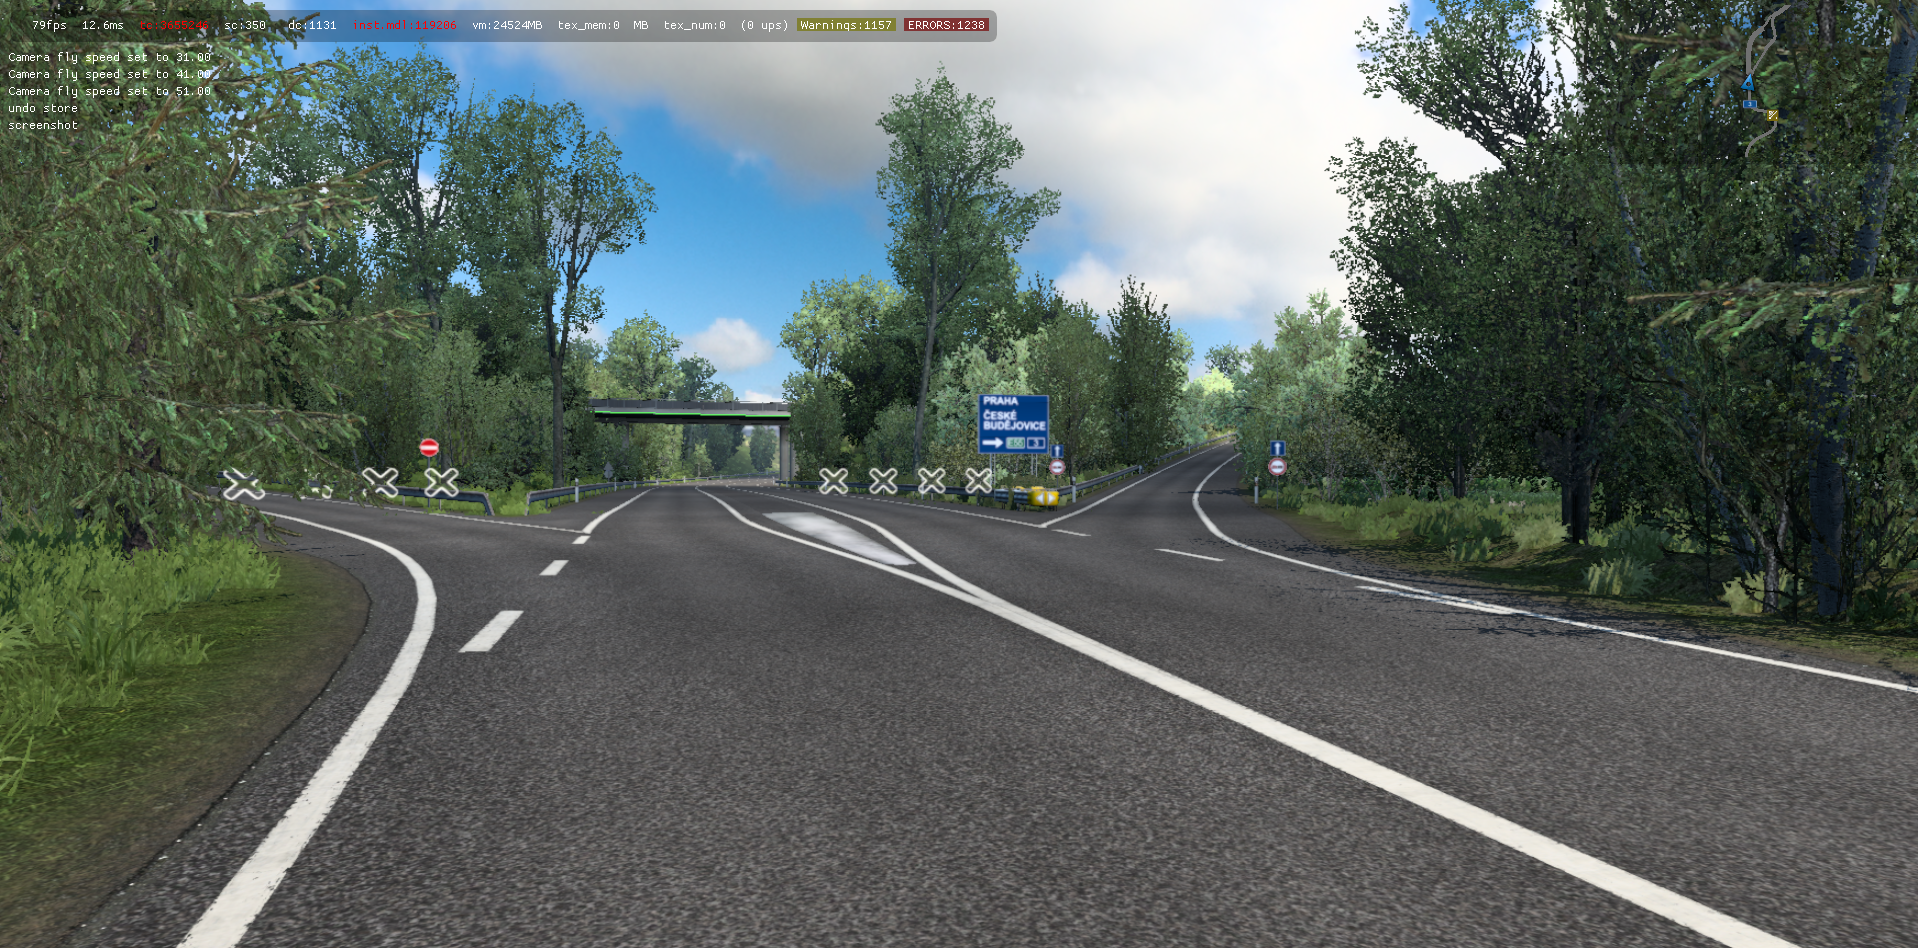 ets2_20210822_203333_00.png